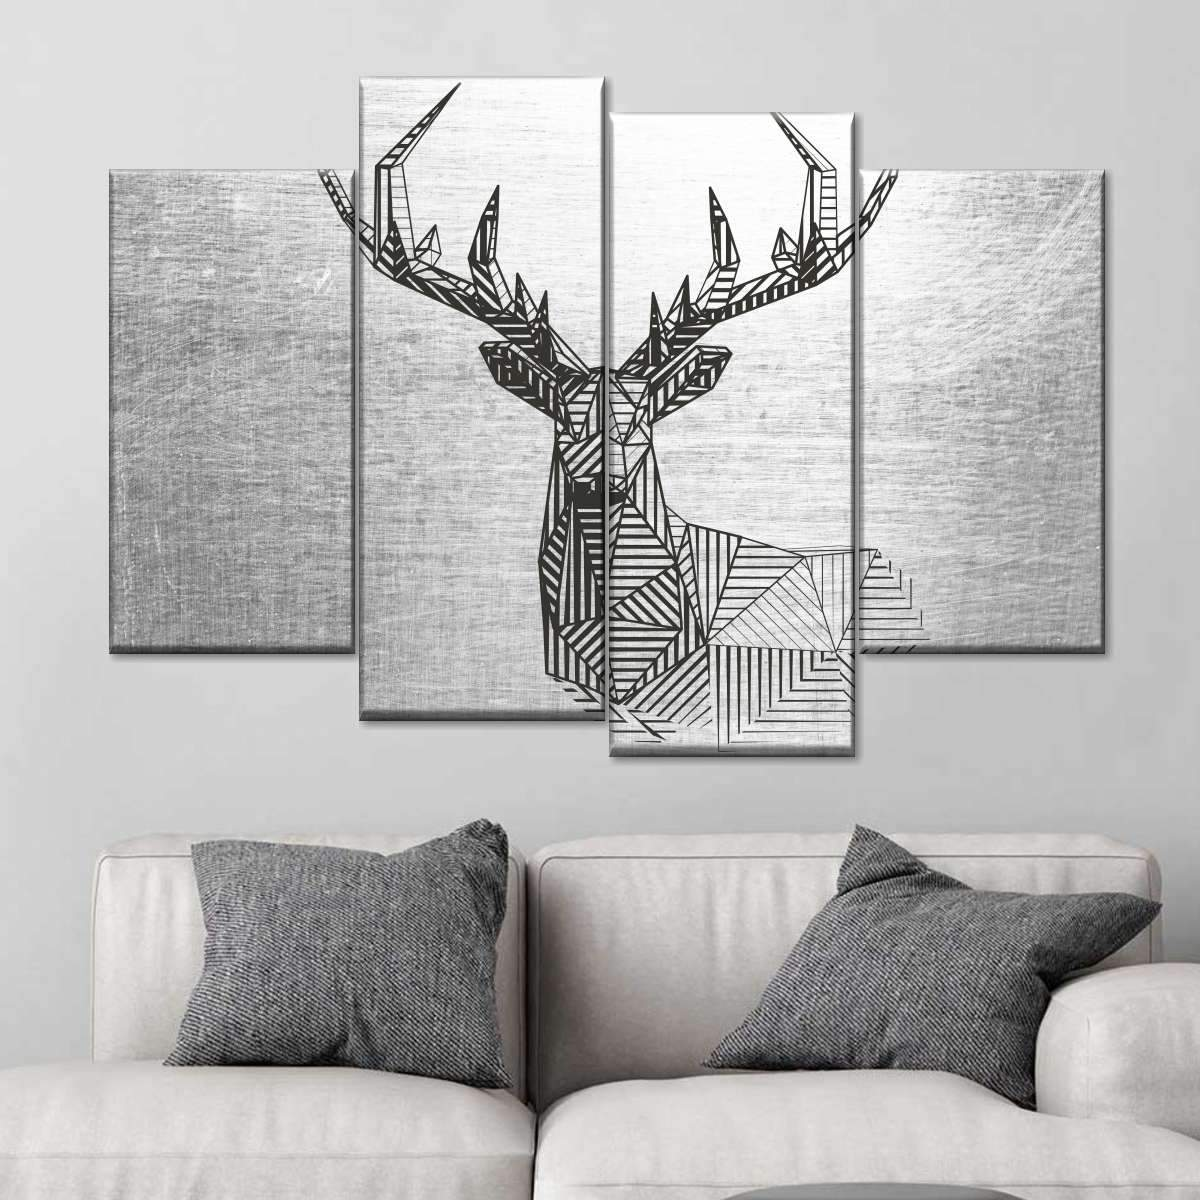 Deer Canvasvault Wall Art Prints